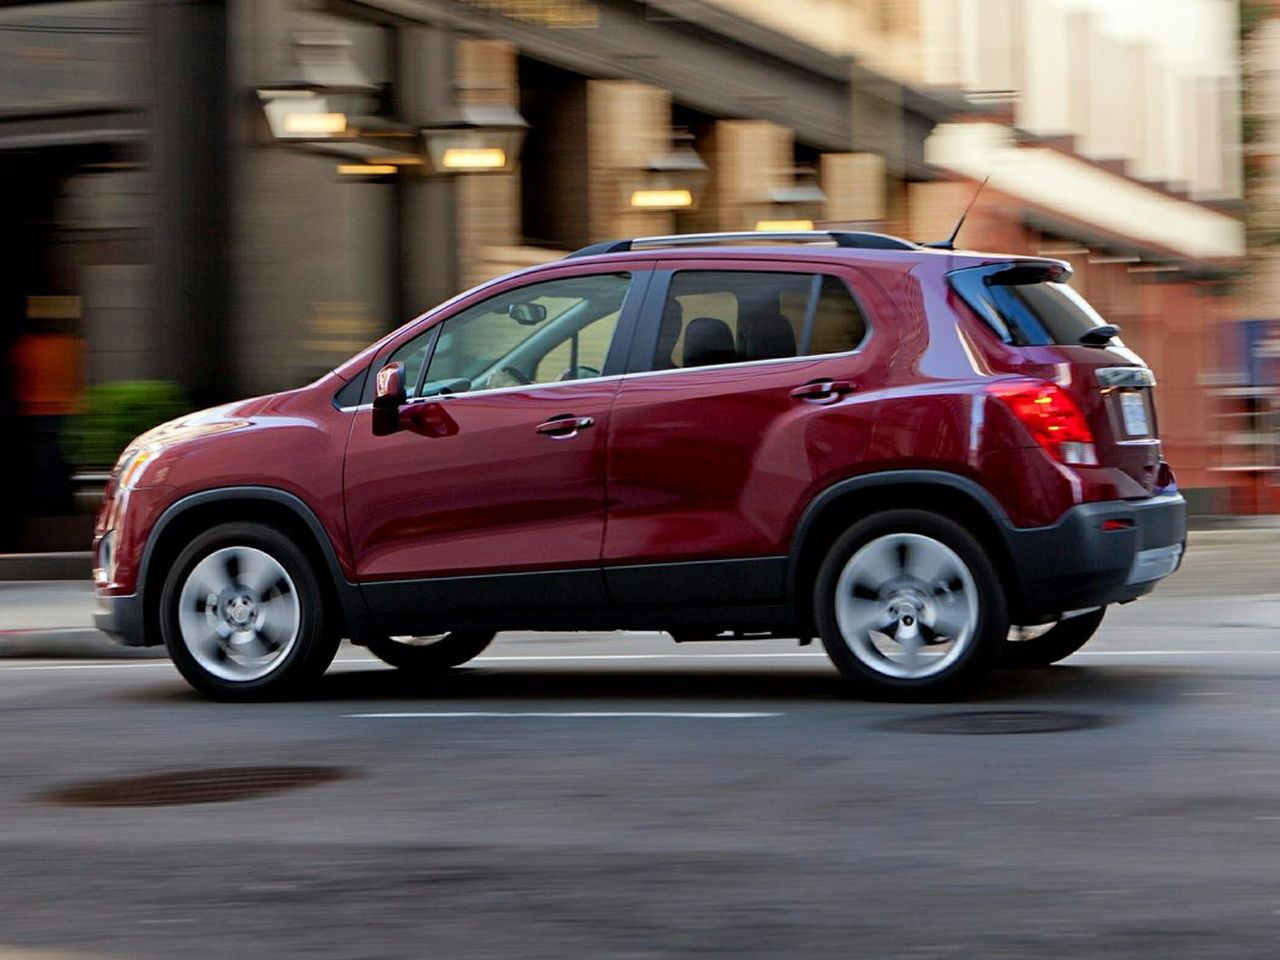 2018 Chevrolet Trax Price and Engine - NoorCars.com